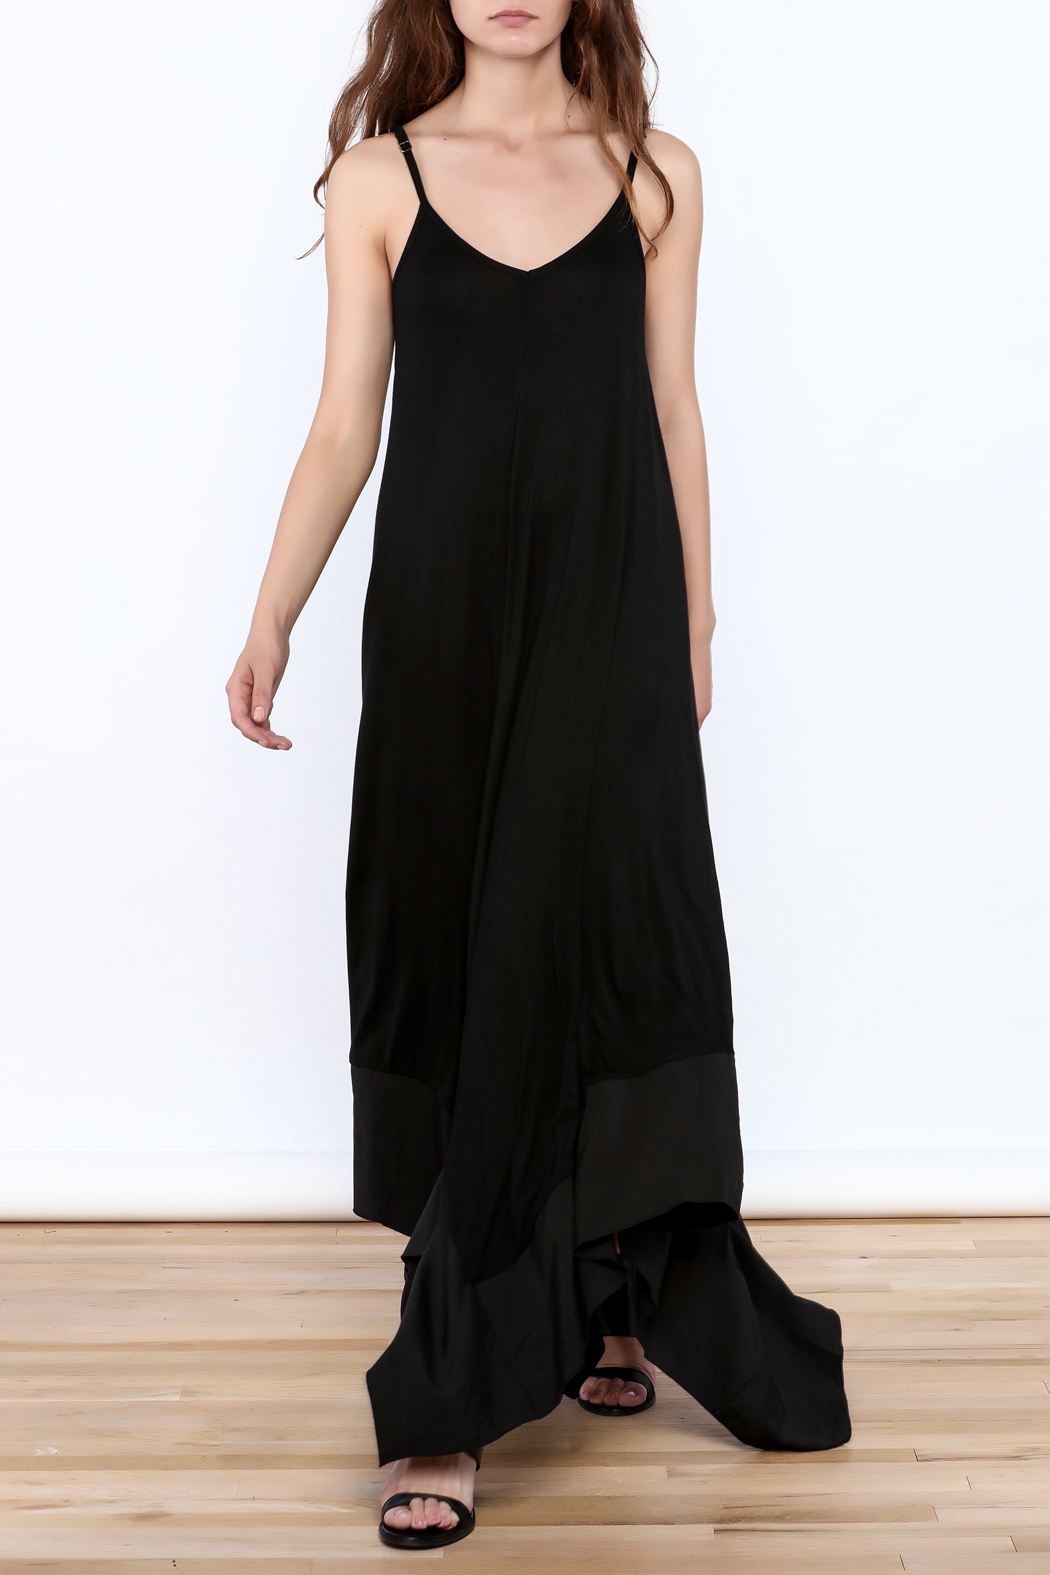 cq by cq Sleeveless Asymmetrical Dress - Front Full Image